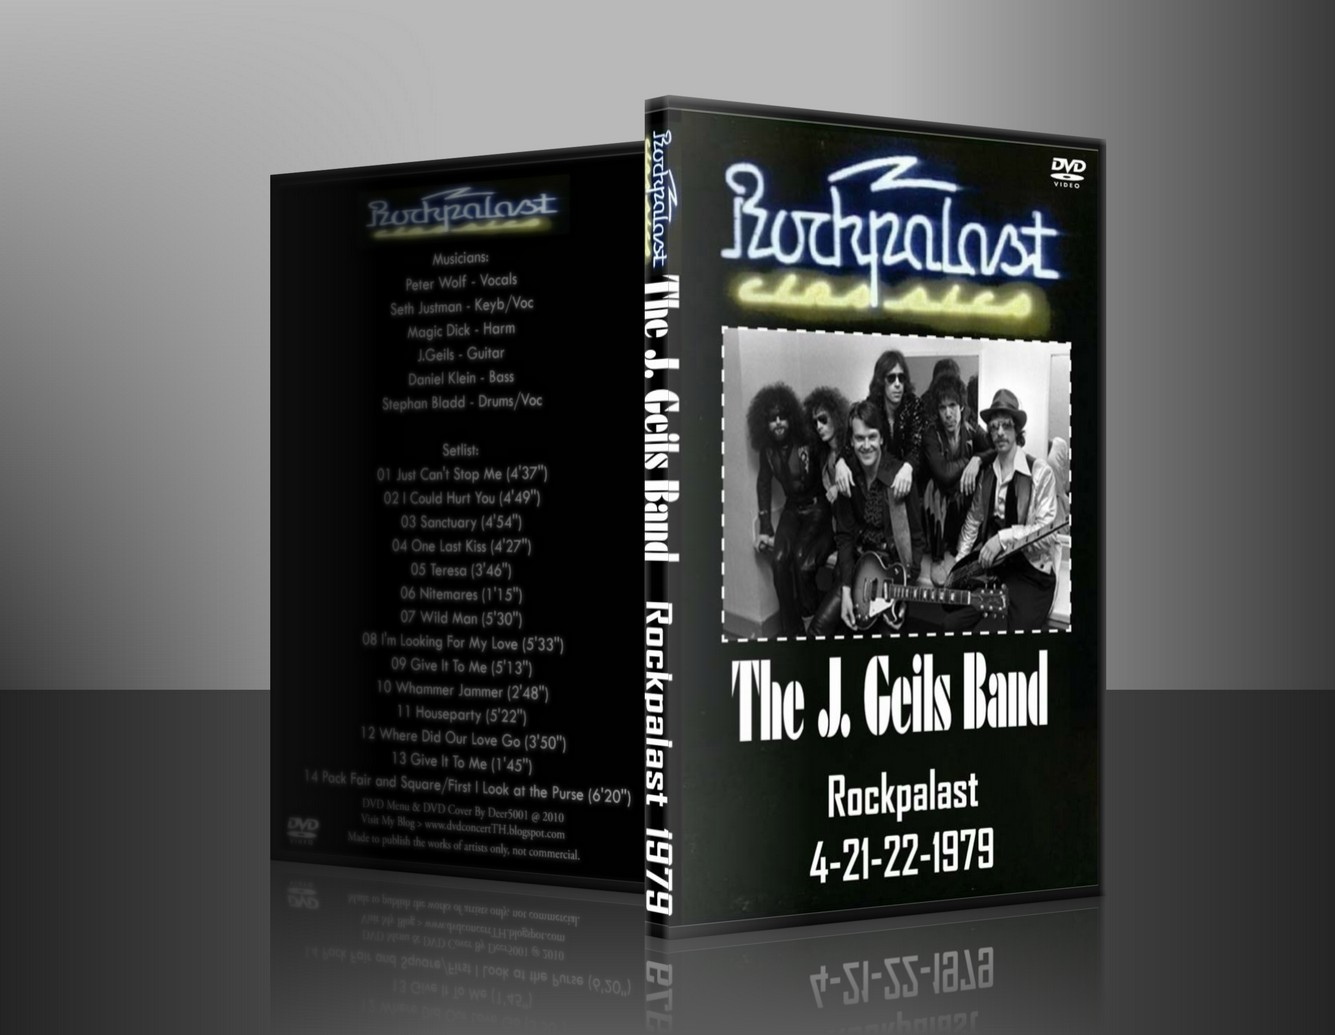 Power by quot deer 5001 quot j geils band 1979 live in rockpalast